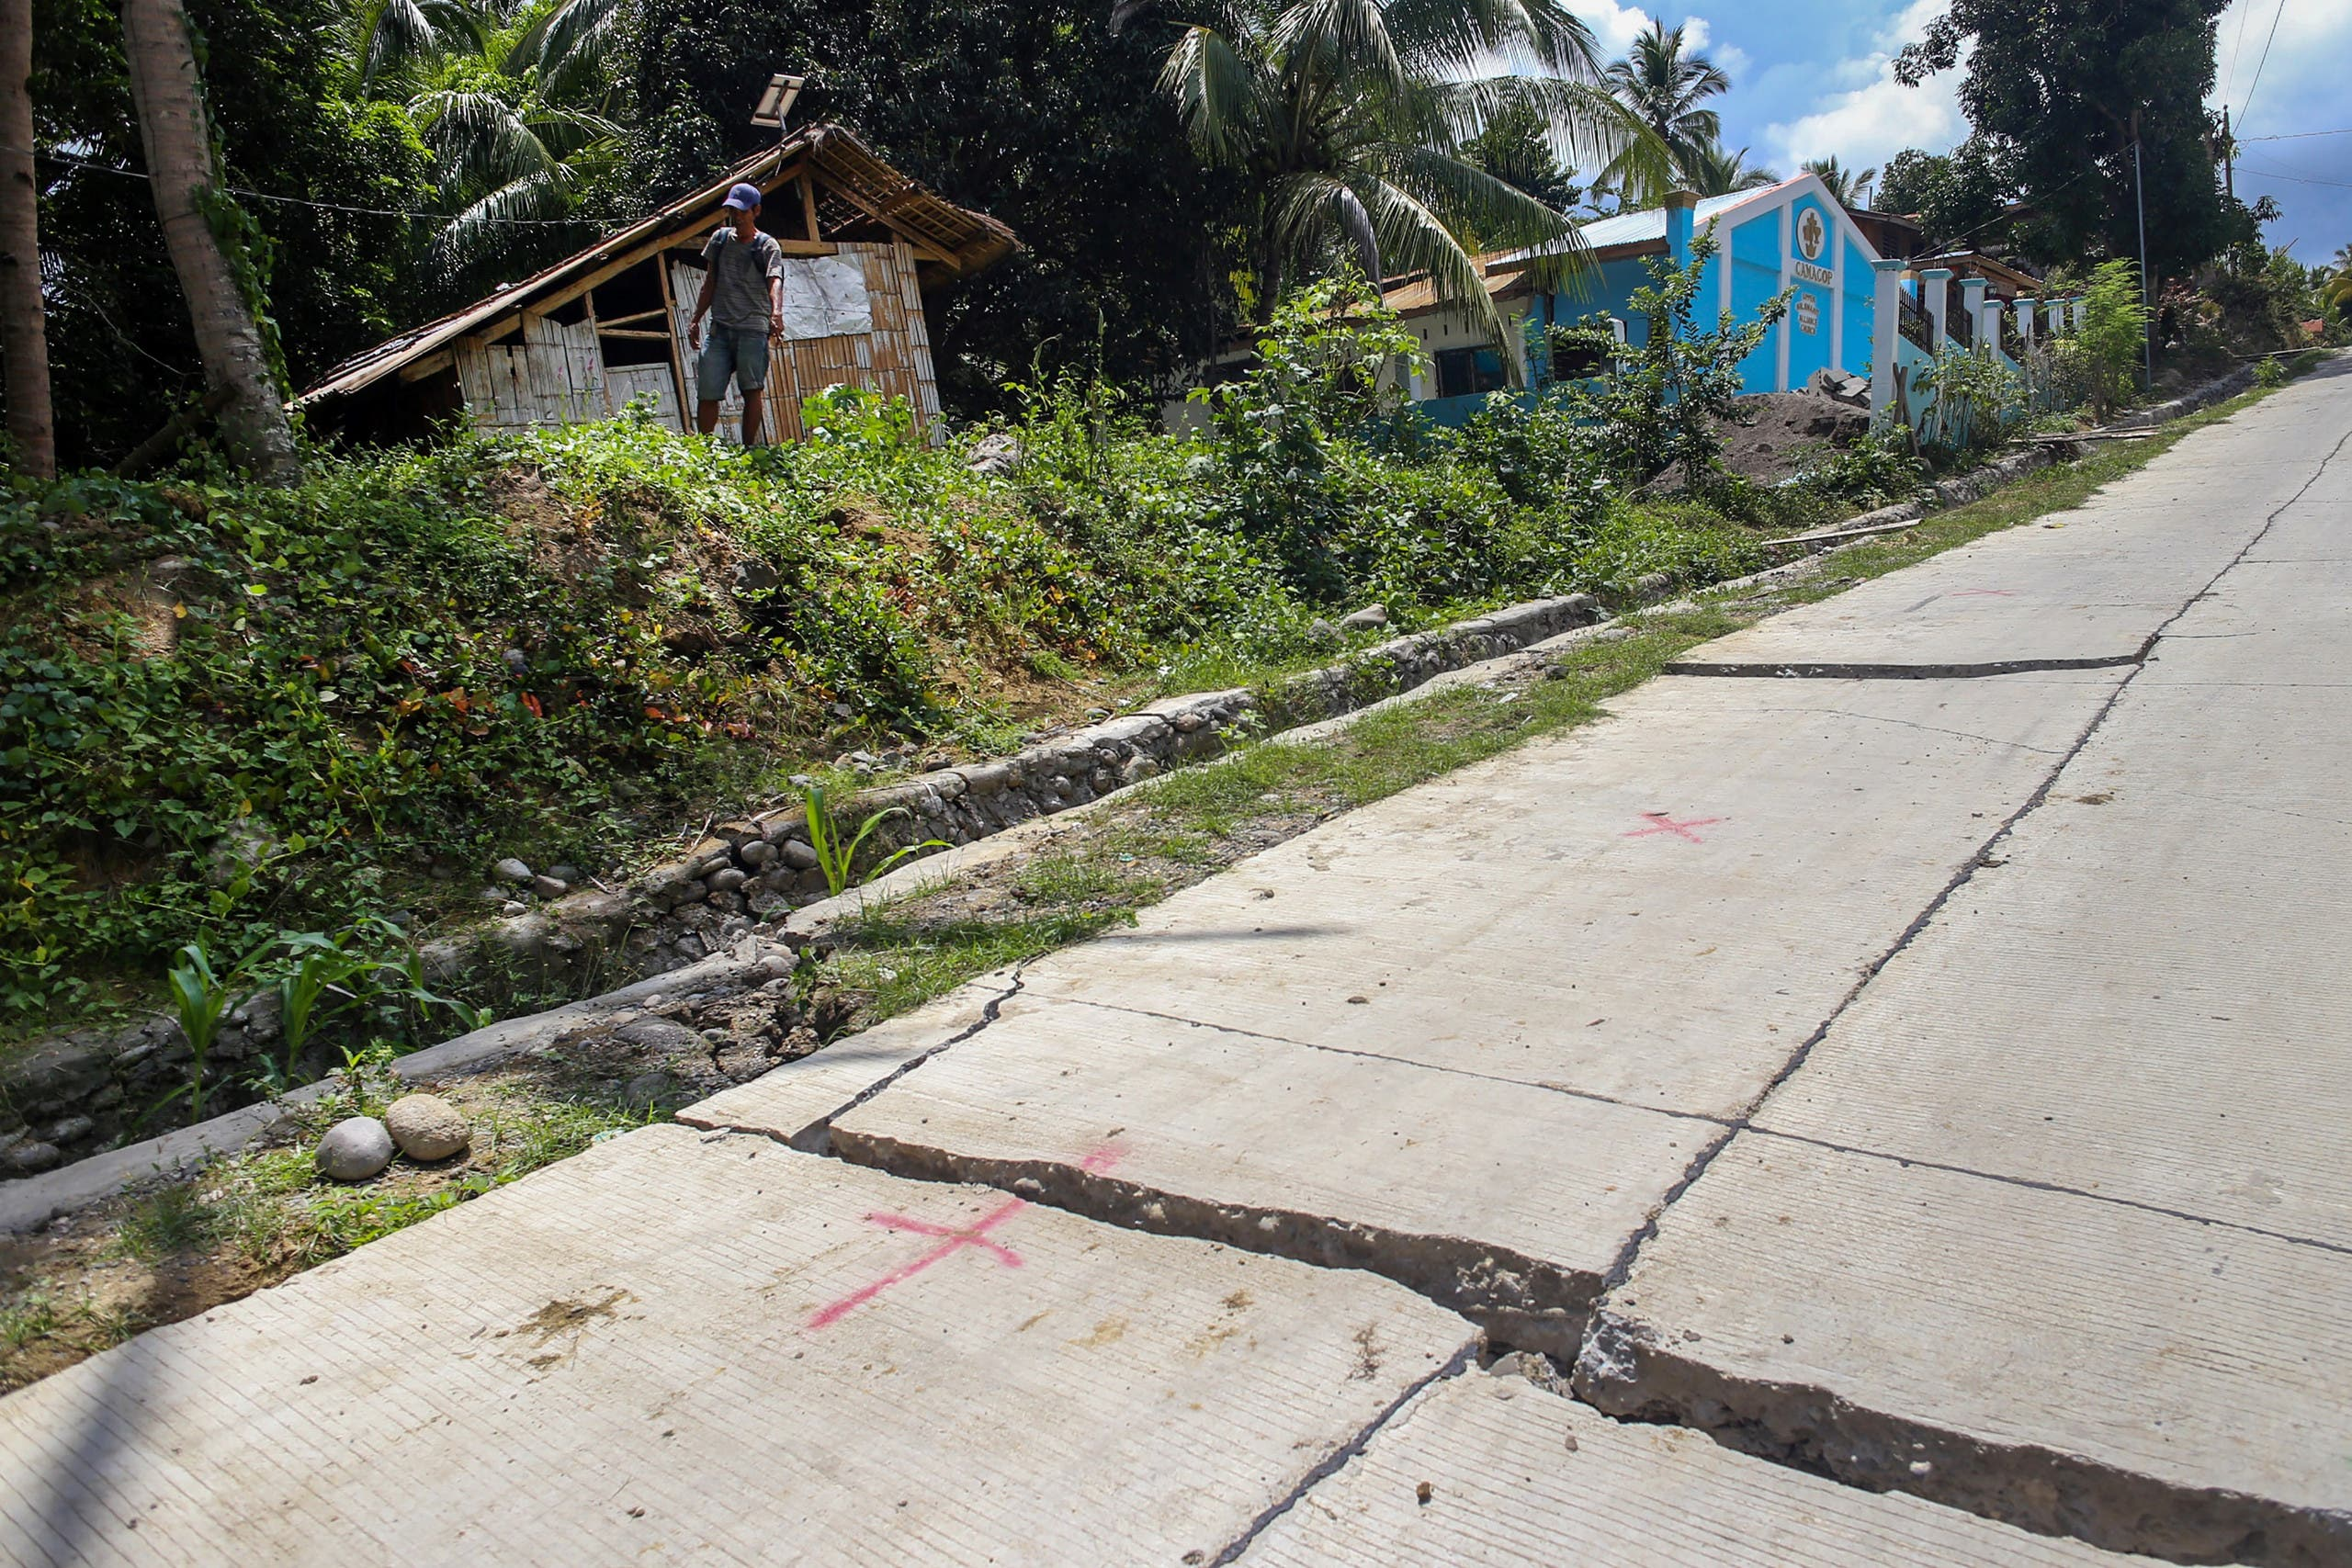 A cracked road in the Philippines earthquake October 17 2019 - AFP